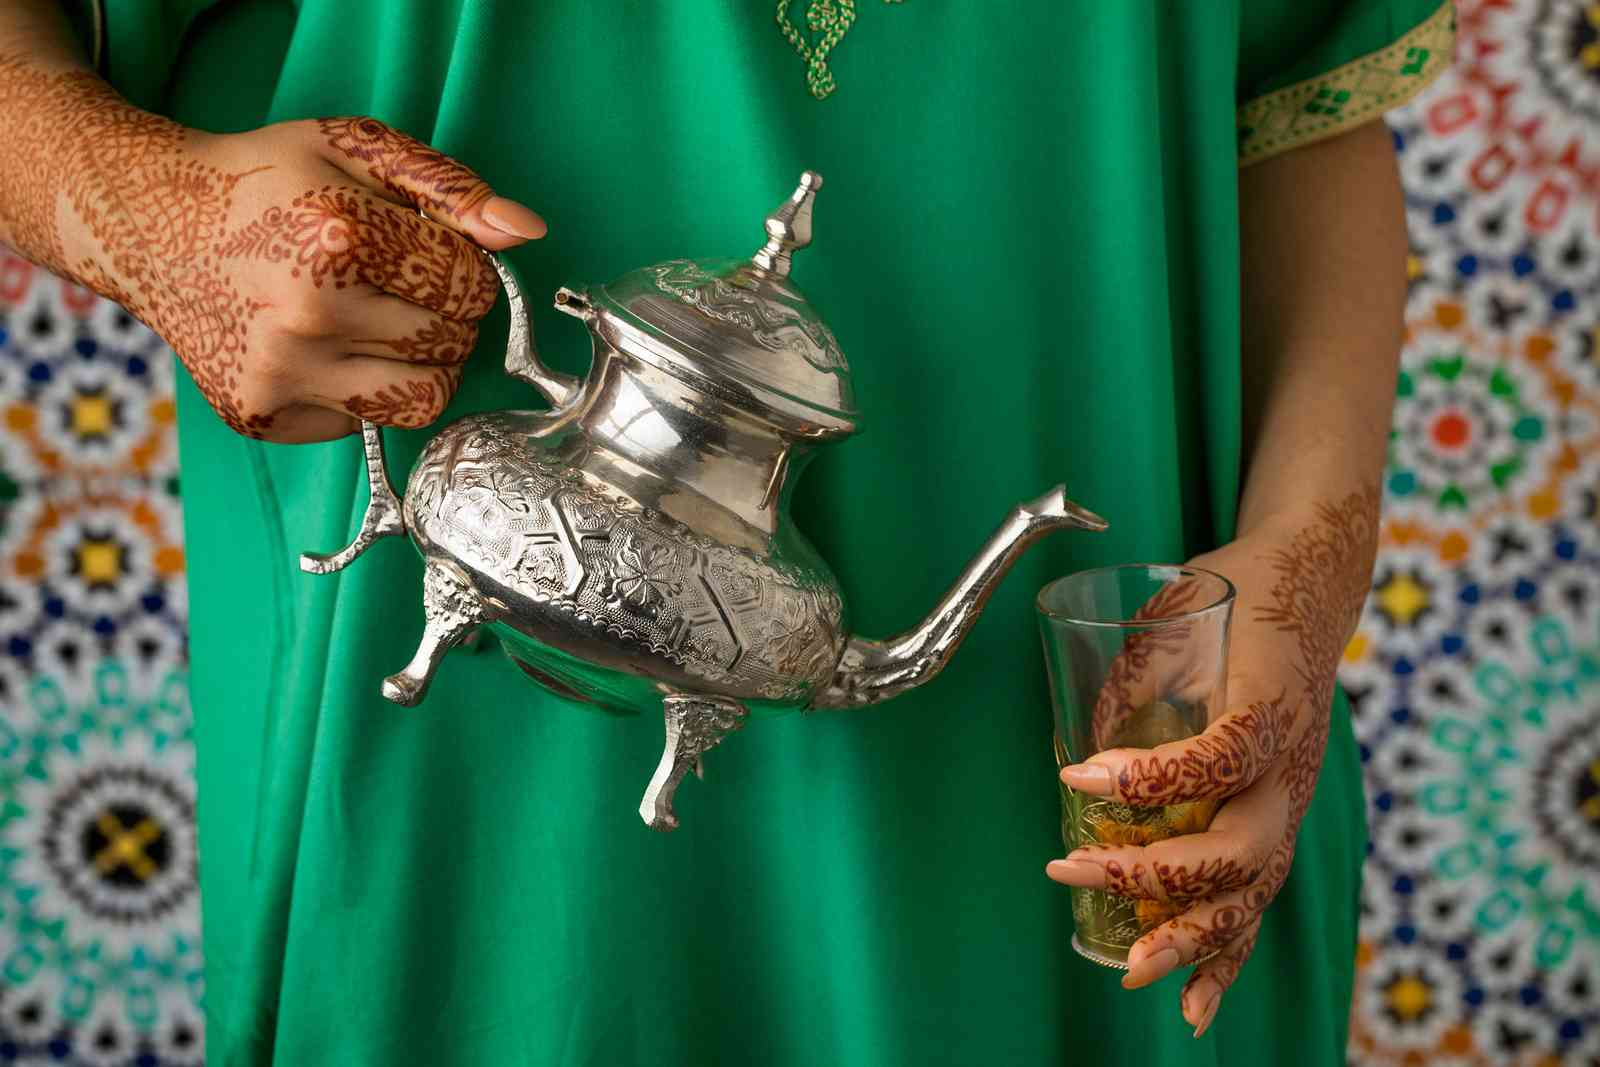 A Moroccan woman pouring tea (Shutterstock)